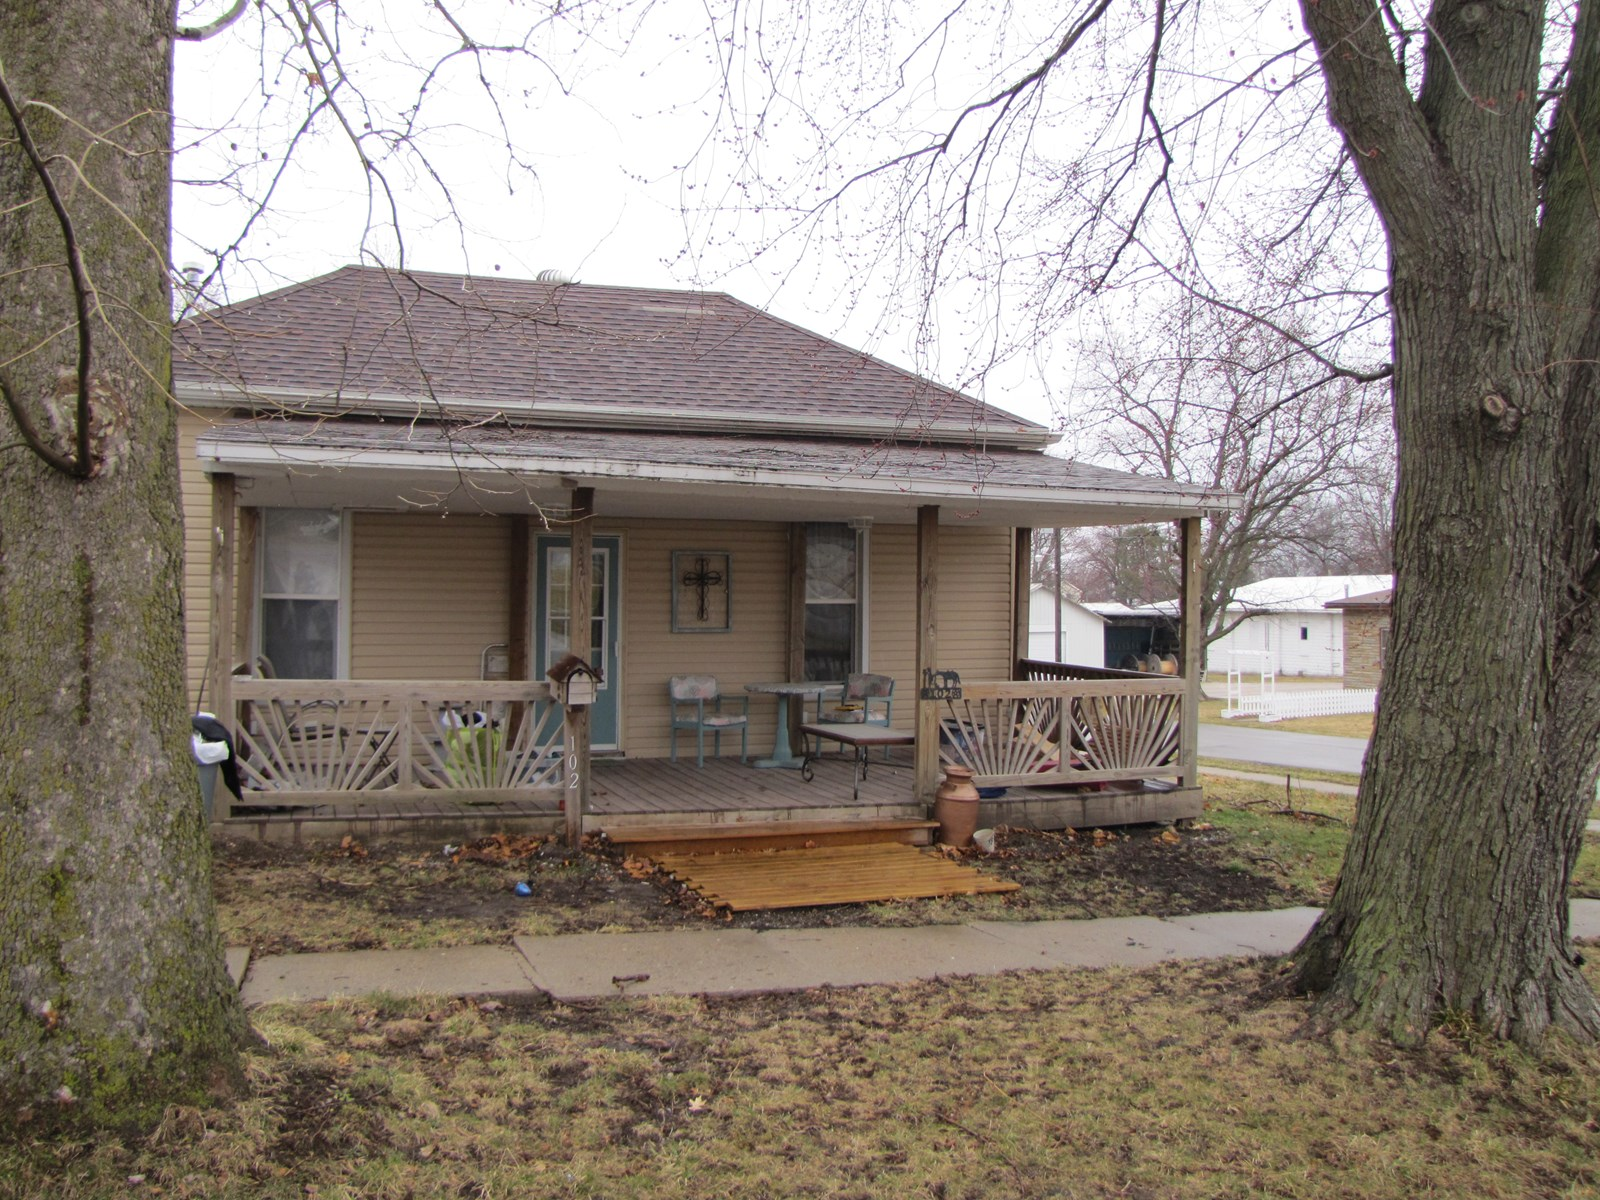 MO LISTING, HOUSE FOR SALE, CORNER LOT, INCOME PROPERTY